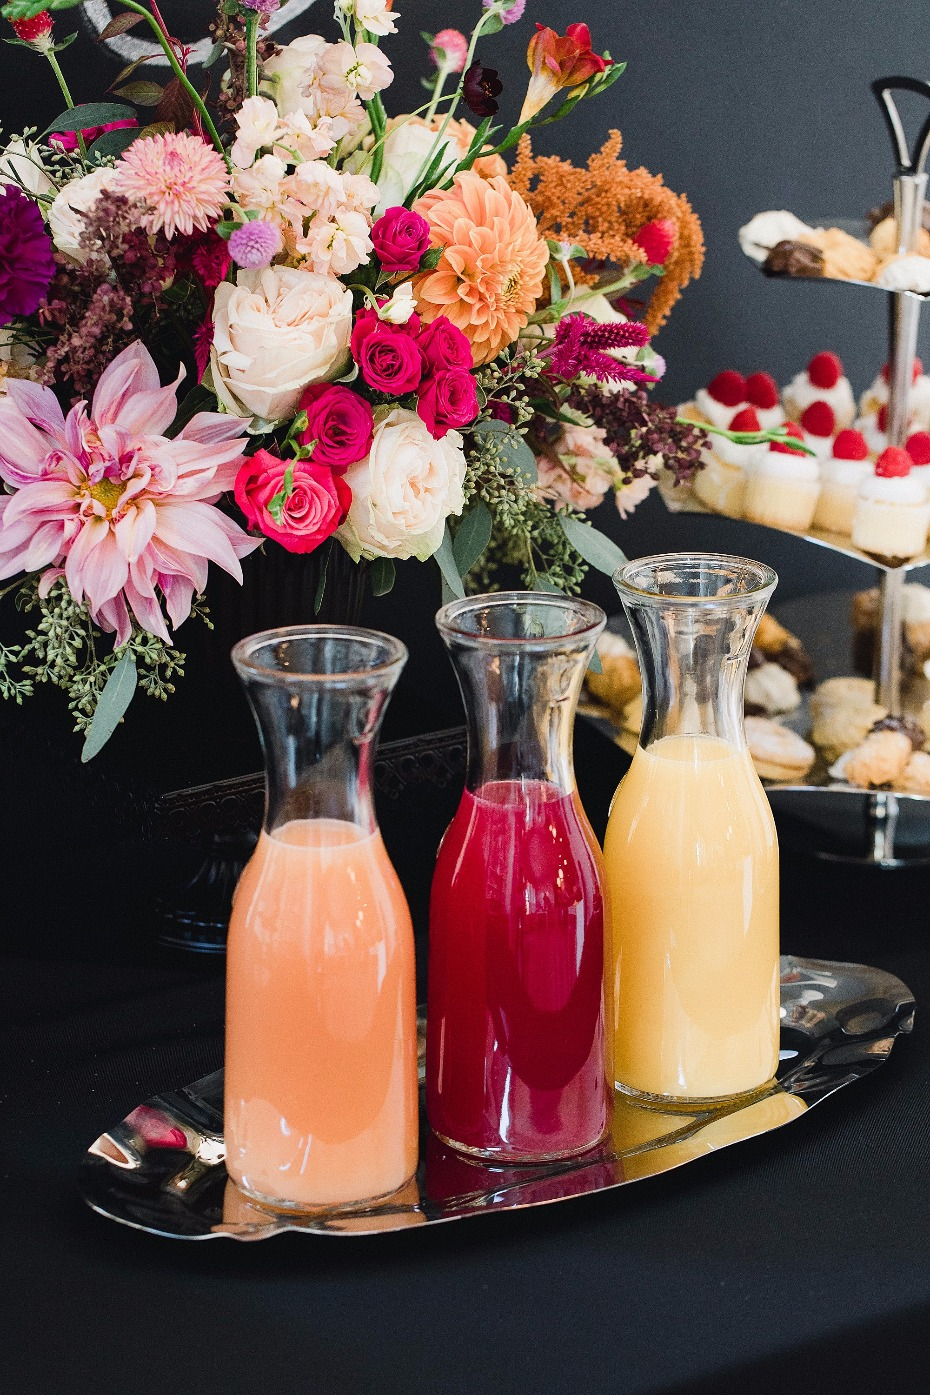 Carafes on a tray